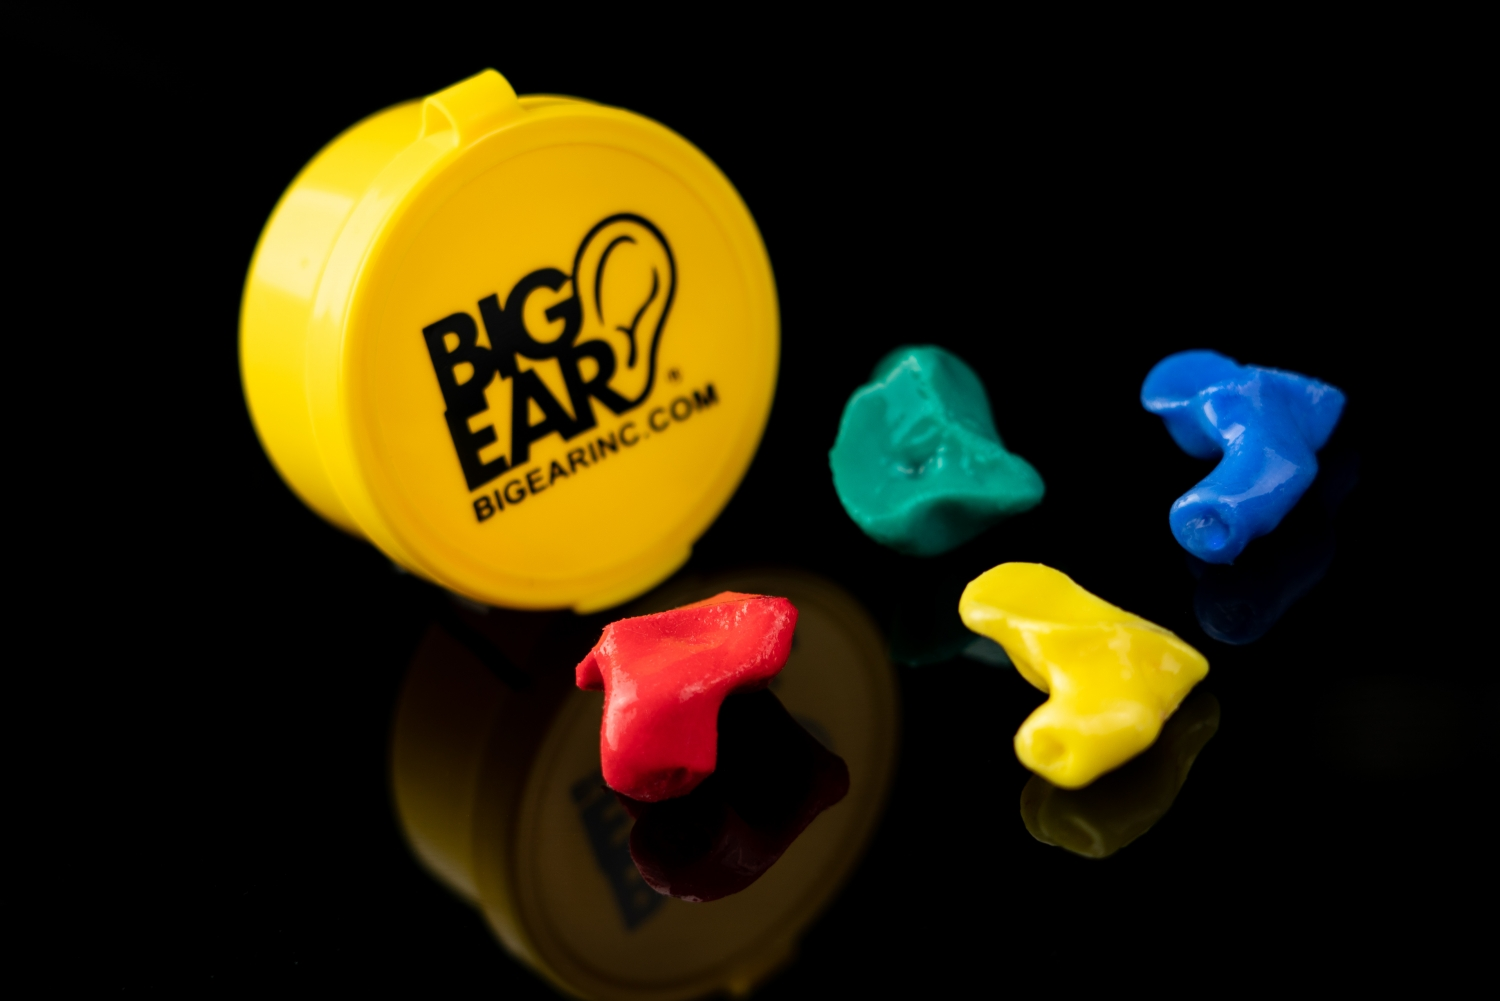 Revolutionary Protective Custom Earplugs Designed to Save Marching Bands' Hearing